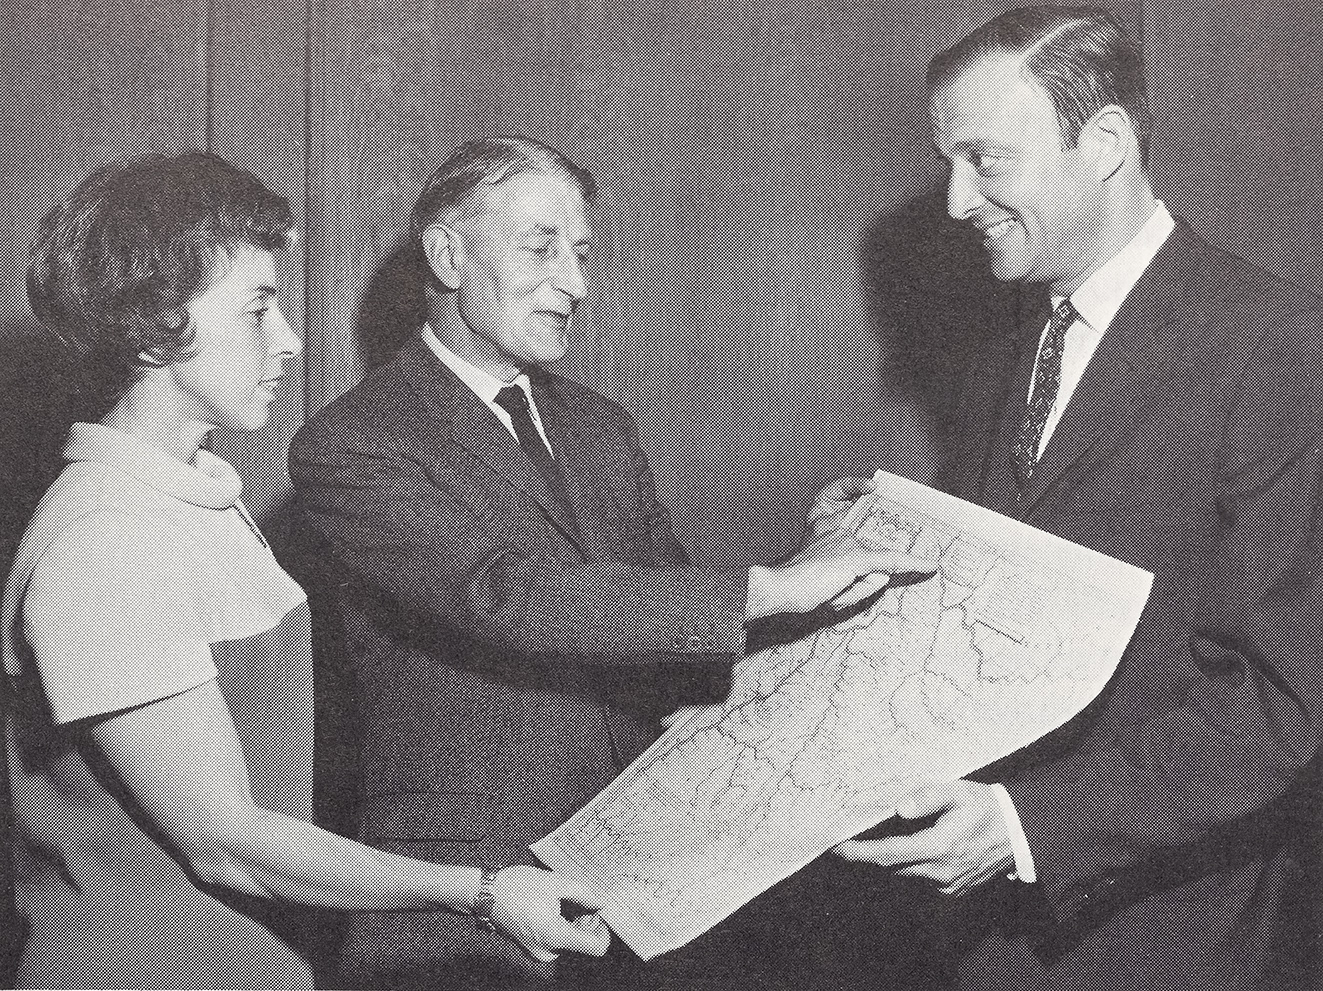 Jossy and Ken Nebenzahl, with R. A. Skelton (center), October 1966